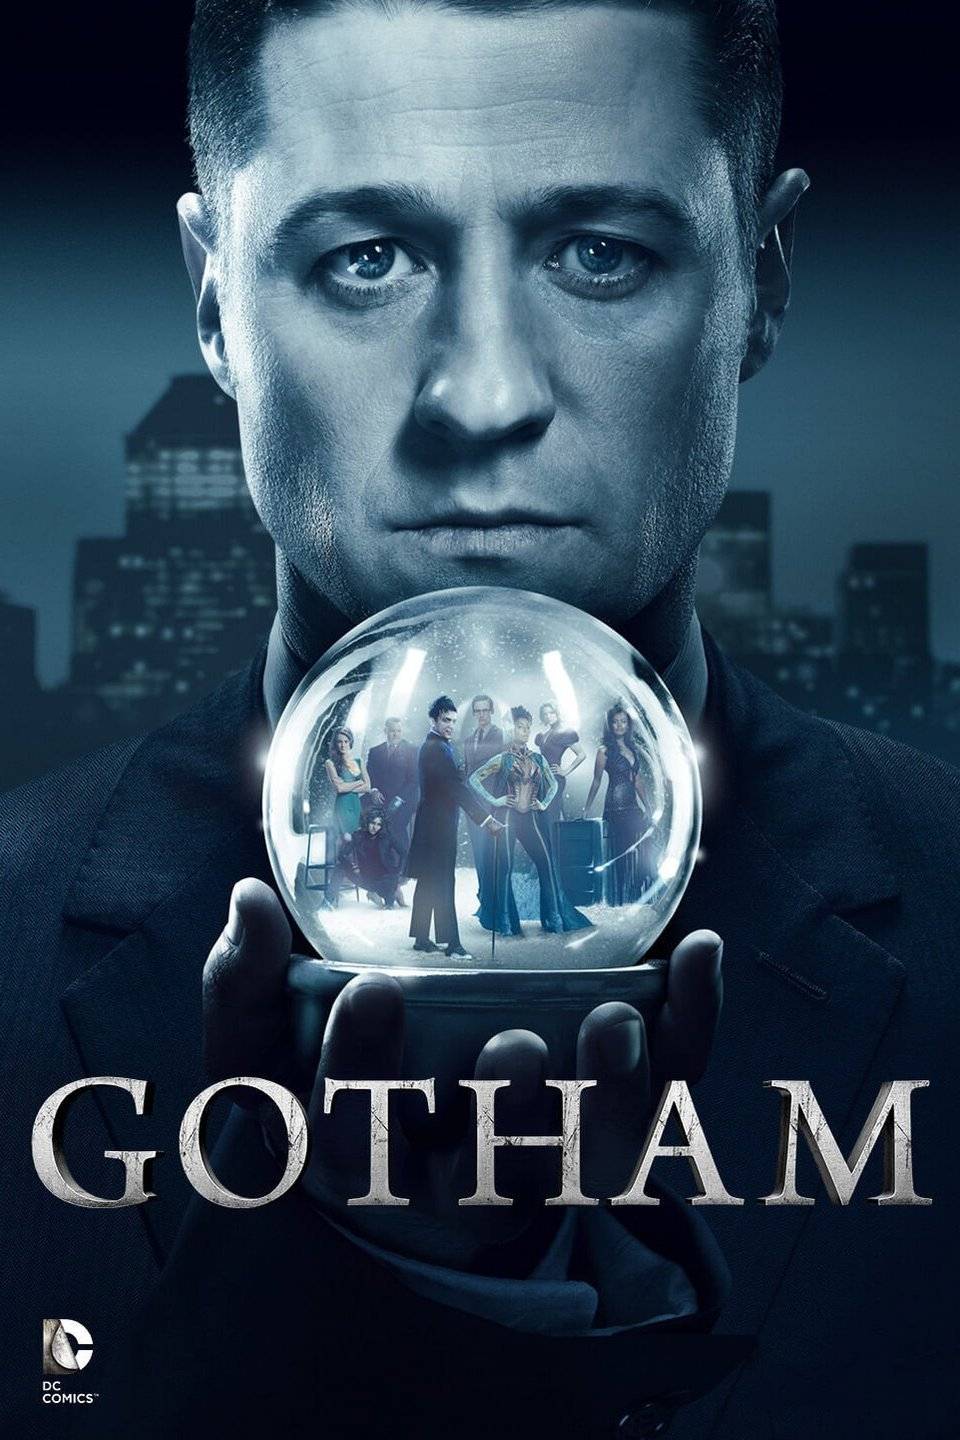 Gotham Season 4 Episode 17 Download HDTV Smalllmkv